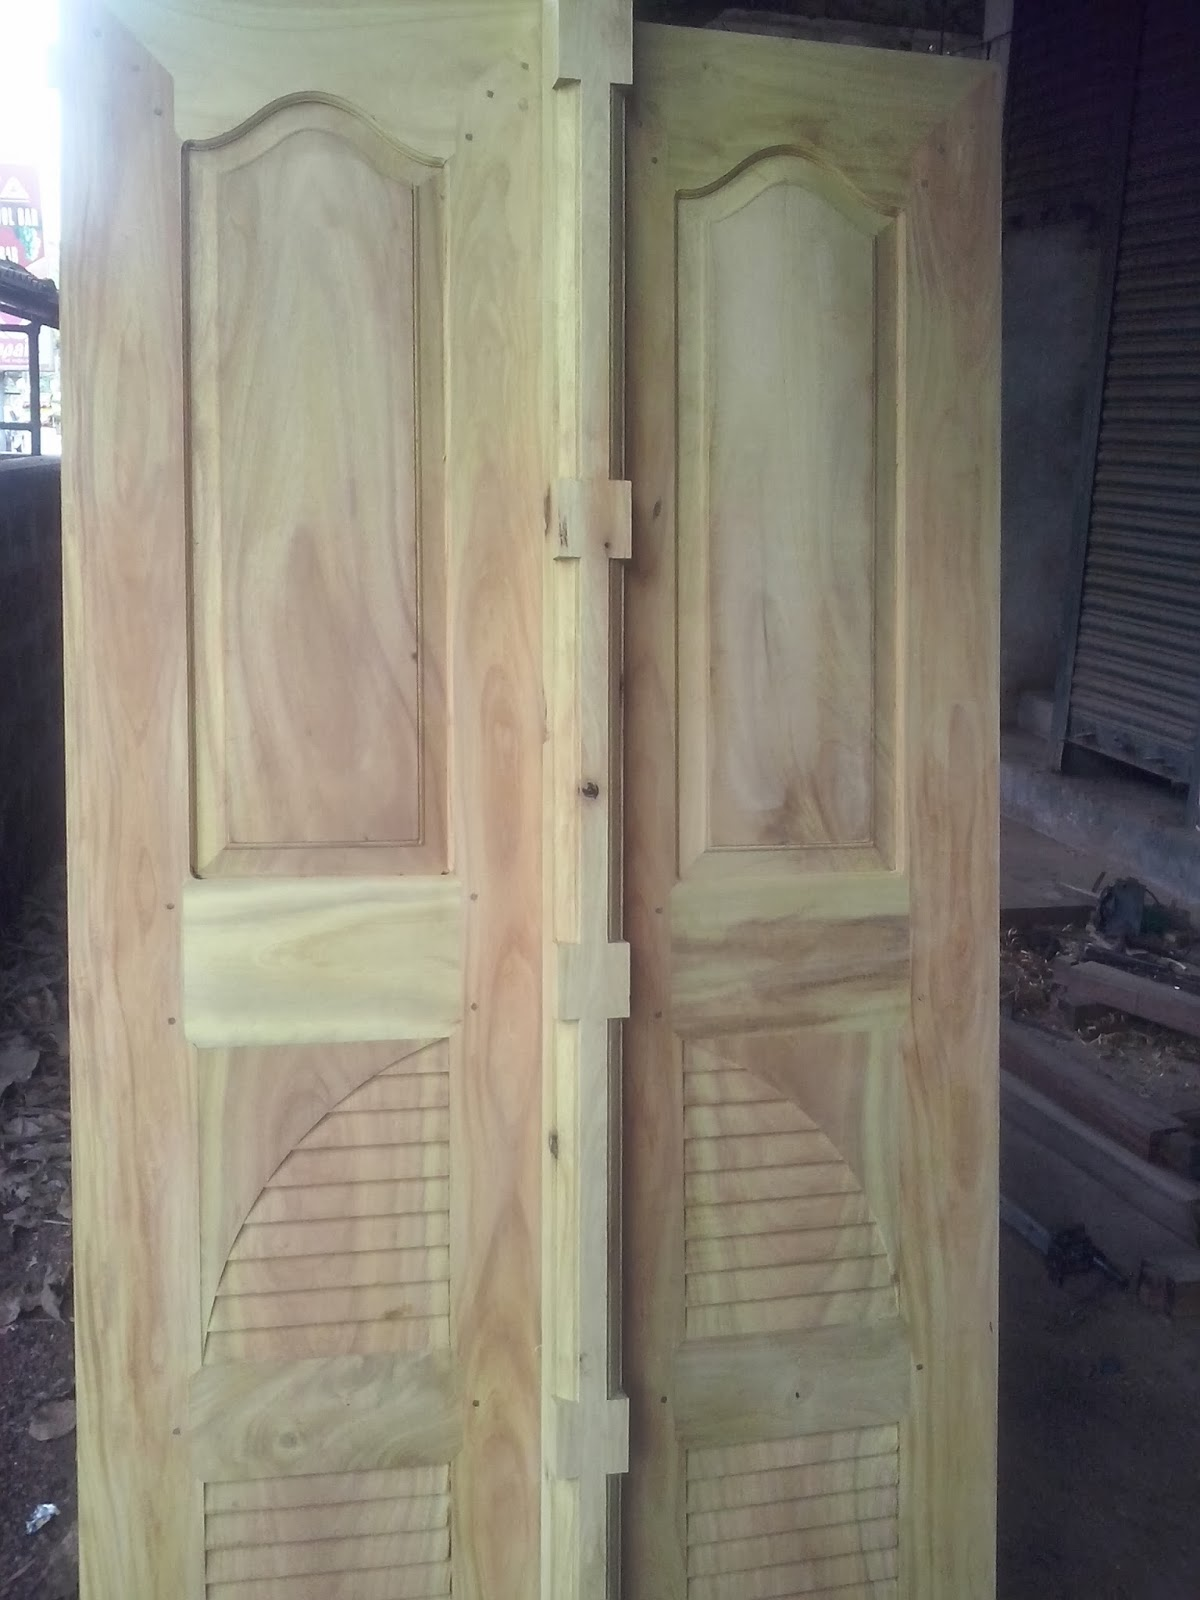 Bavas wood works main entrance wooden double door designs for Entrance door designs photos